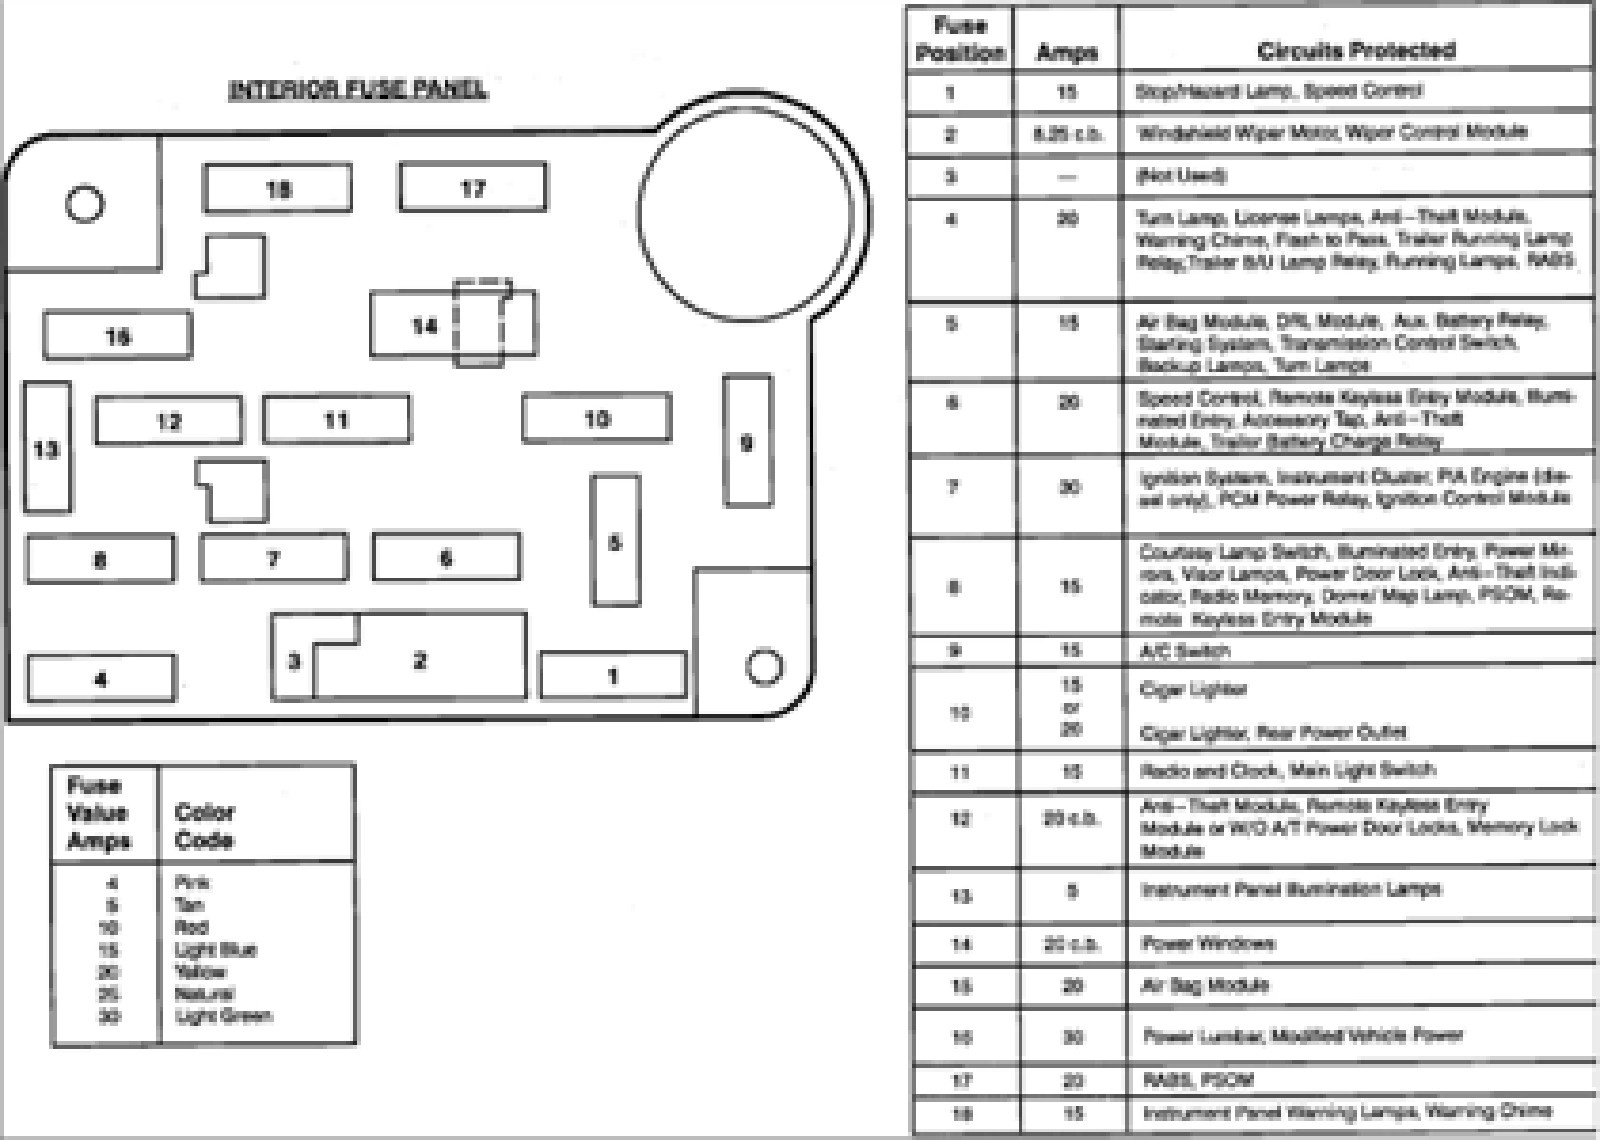 93 Ford Econoline Fuse Box Wiring Diagrams Festiva Diagram E 150 Questions For A 1993 Van